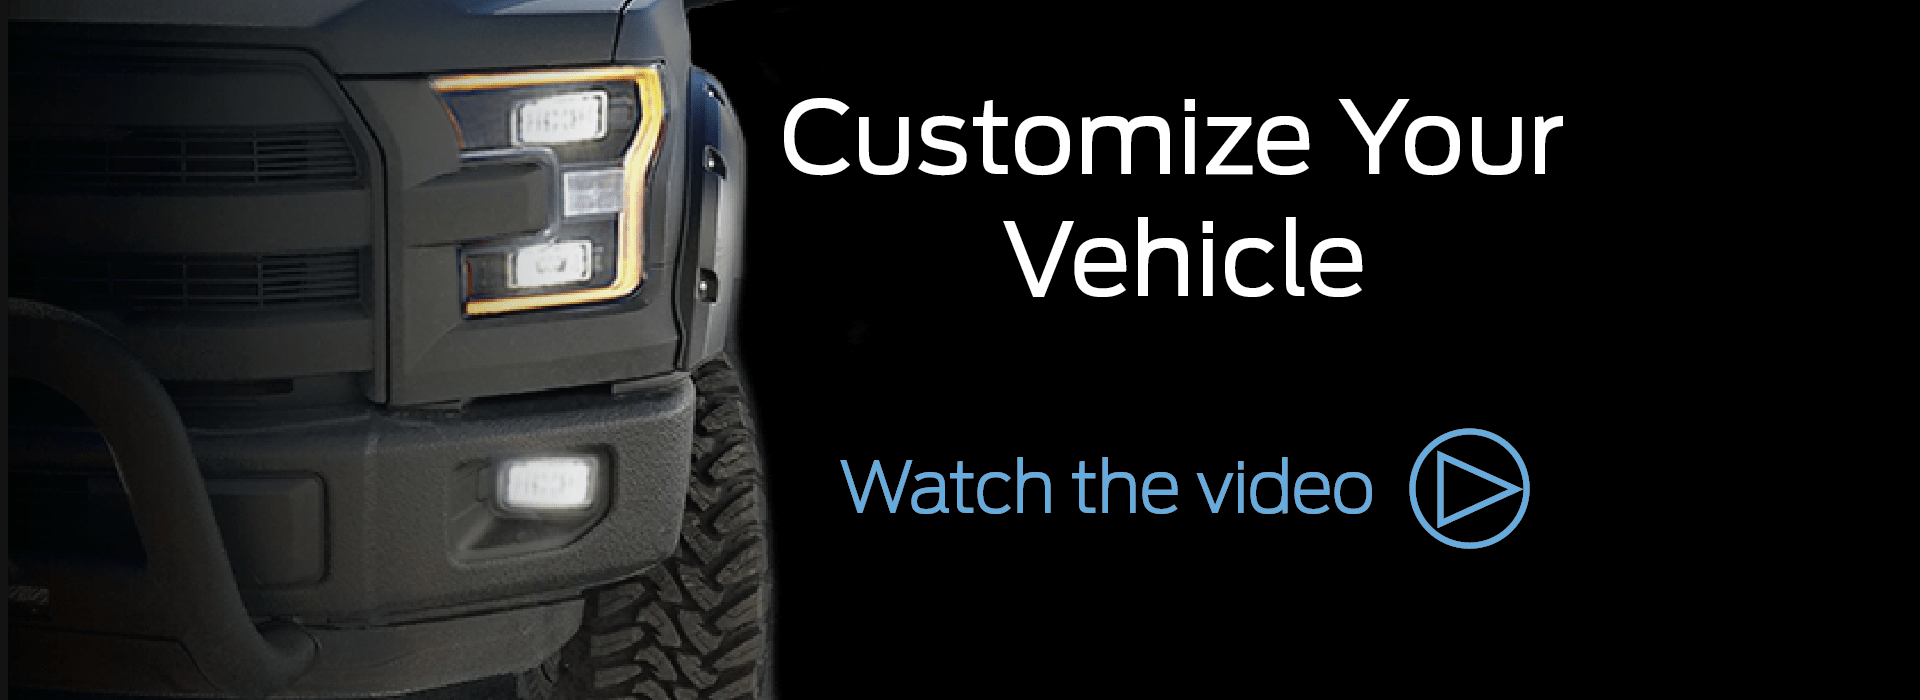 Customize Your Vehicle